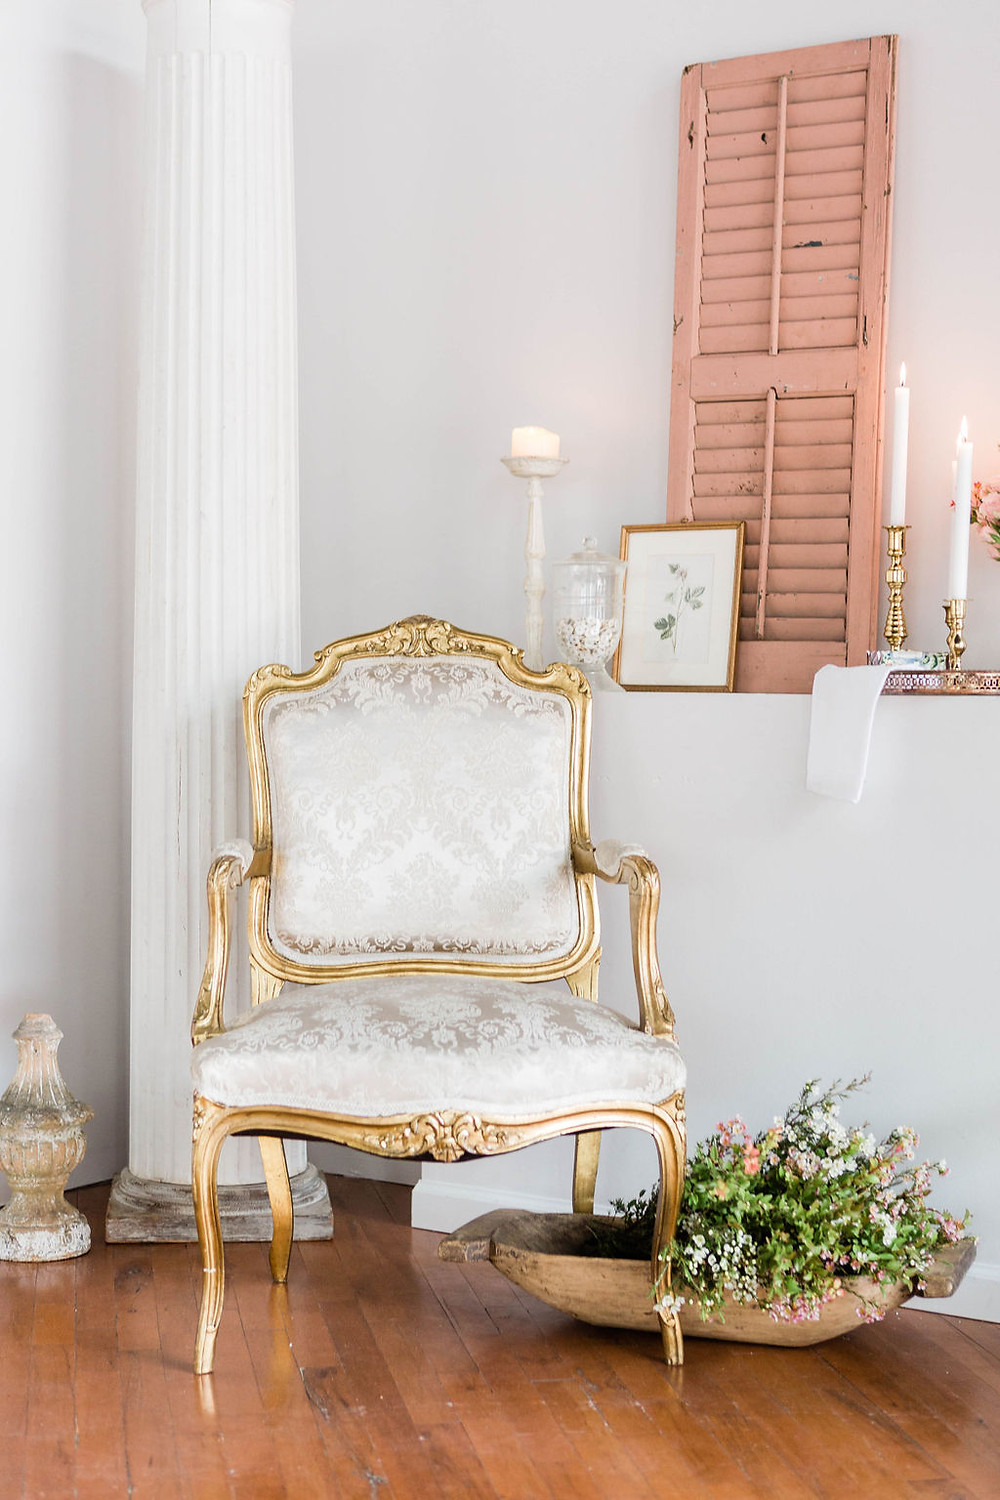 French vintage Platinum covered, gold-trimmed armchair with vintage finds create an inspiring room